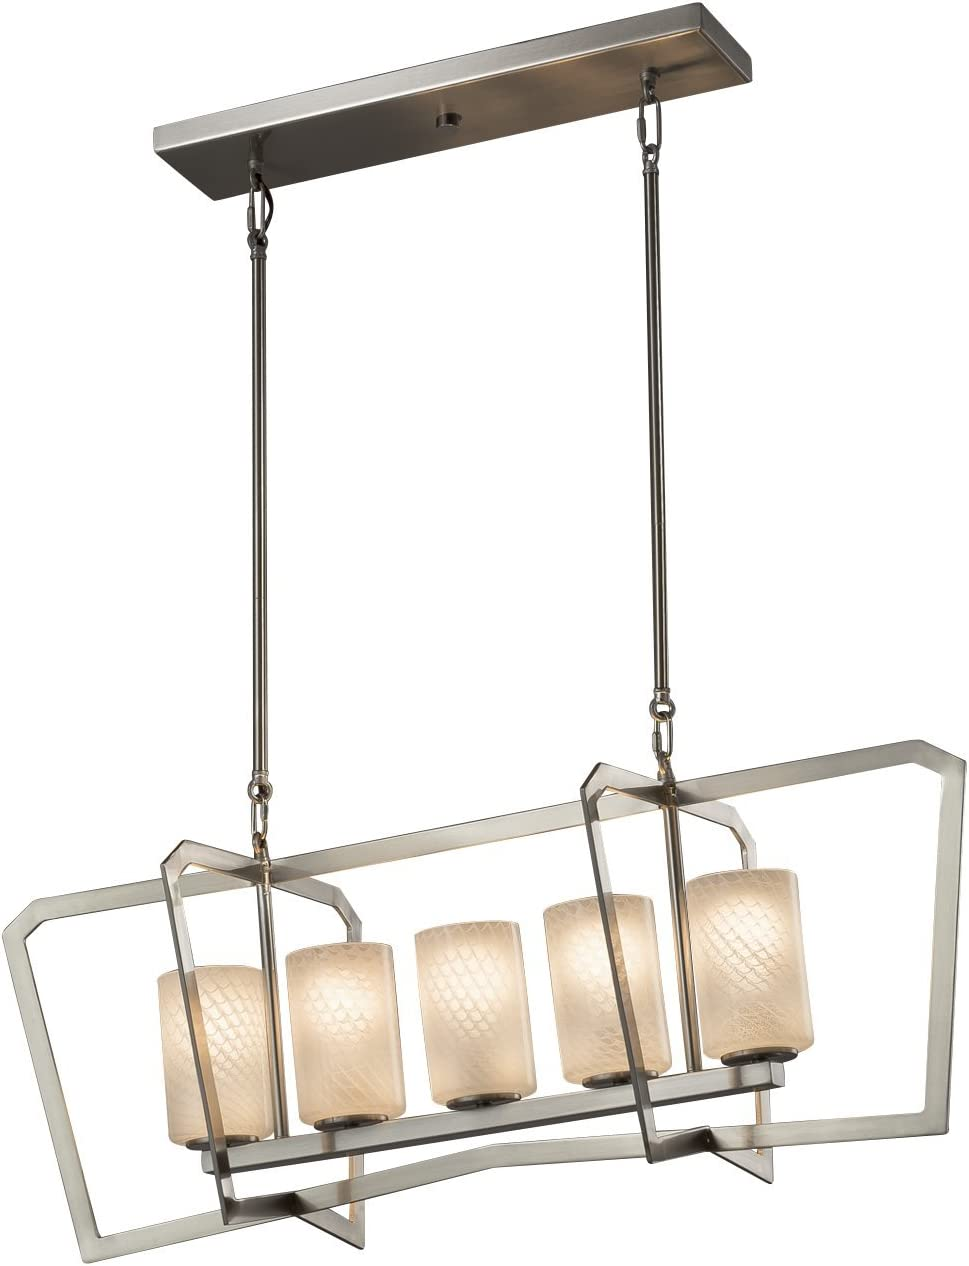 Artisan Glass Shade in Weave Aria 1-Light Intersecting Chandelier Fusion Brushed Nickel Finish